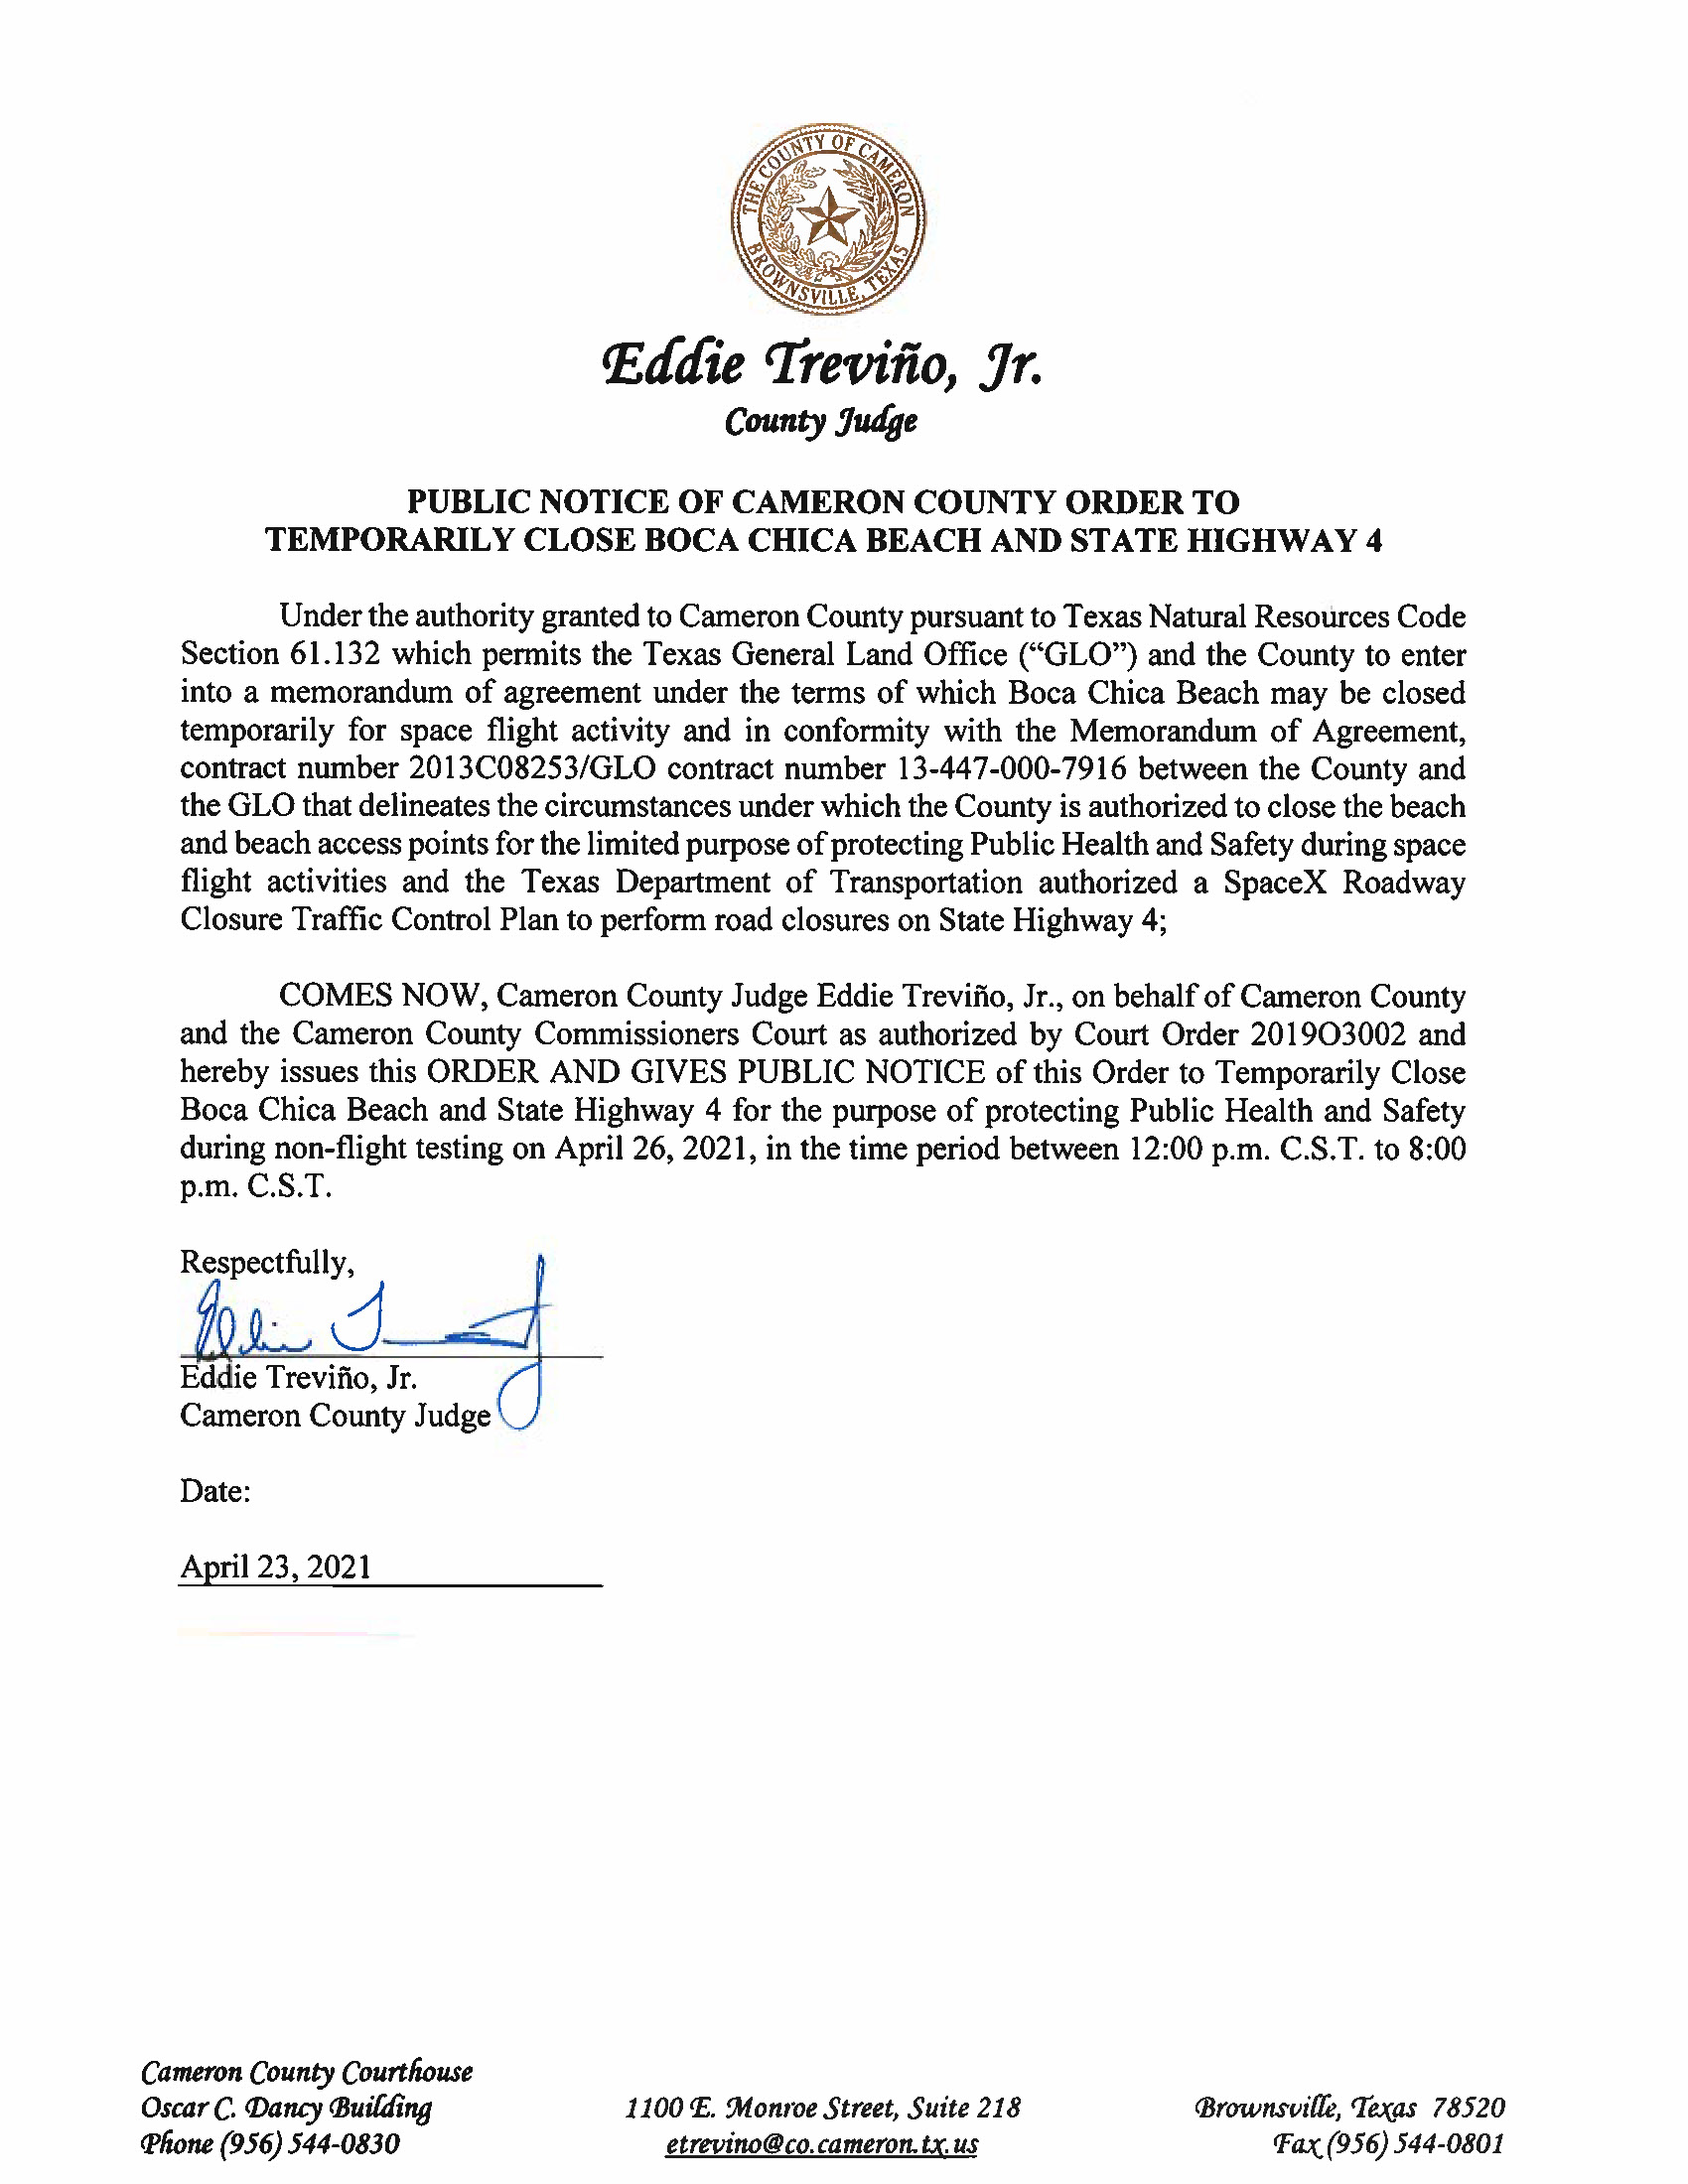 PUBLIC NOTICE OF CAMERON COUNTY ORDER TO TEMP. BEACH CLOSURE AND HWY.04.26.2021